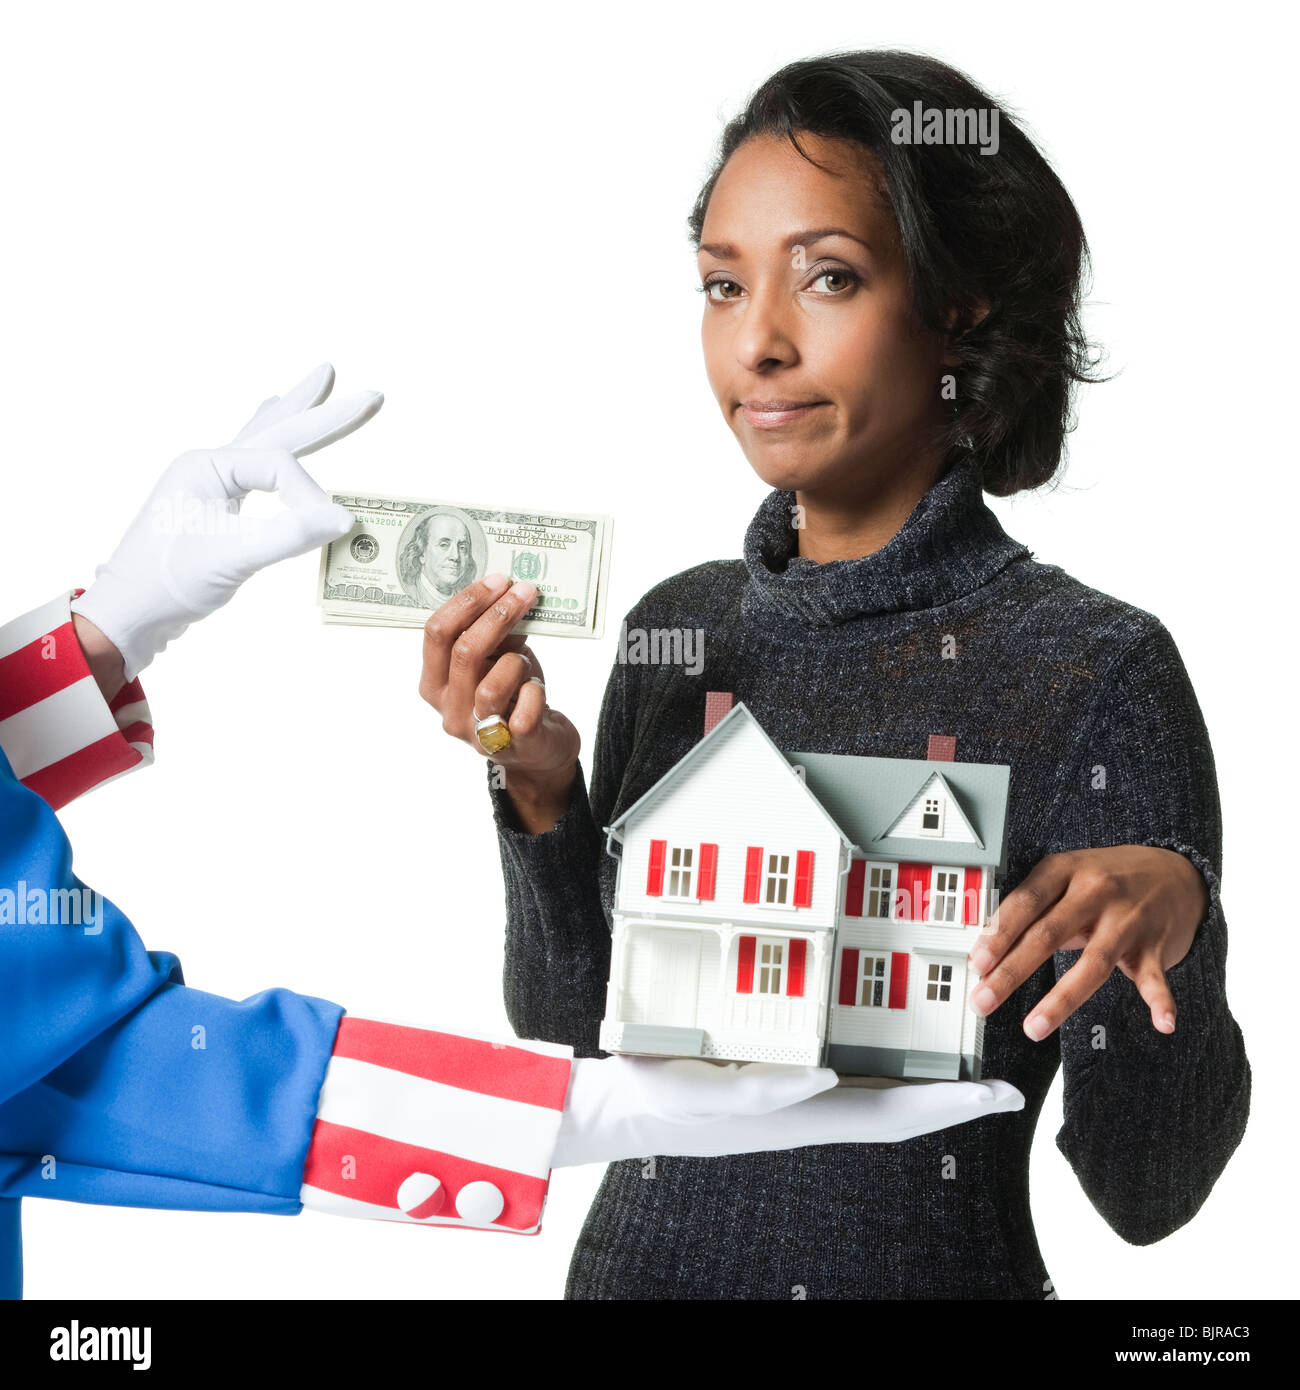 Mid adult woman holding model house and paying for it, studio shot - Stock Image